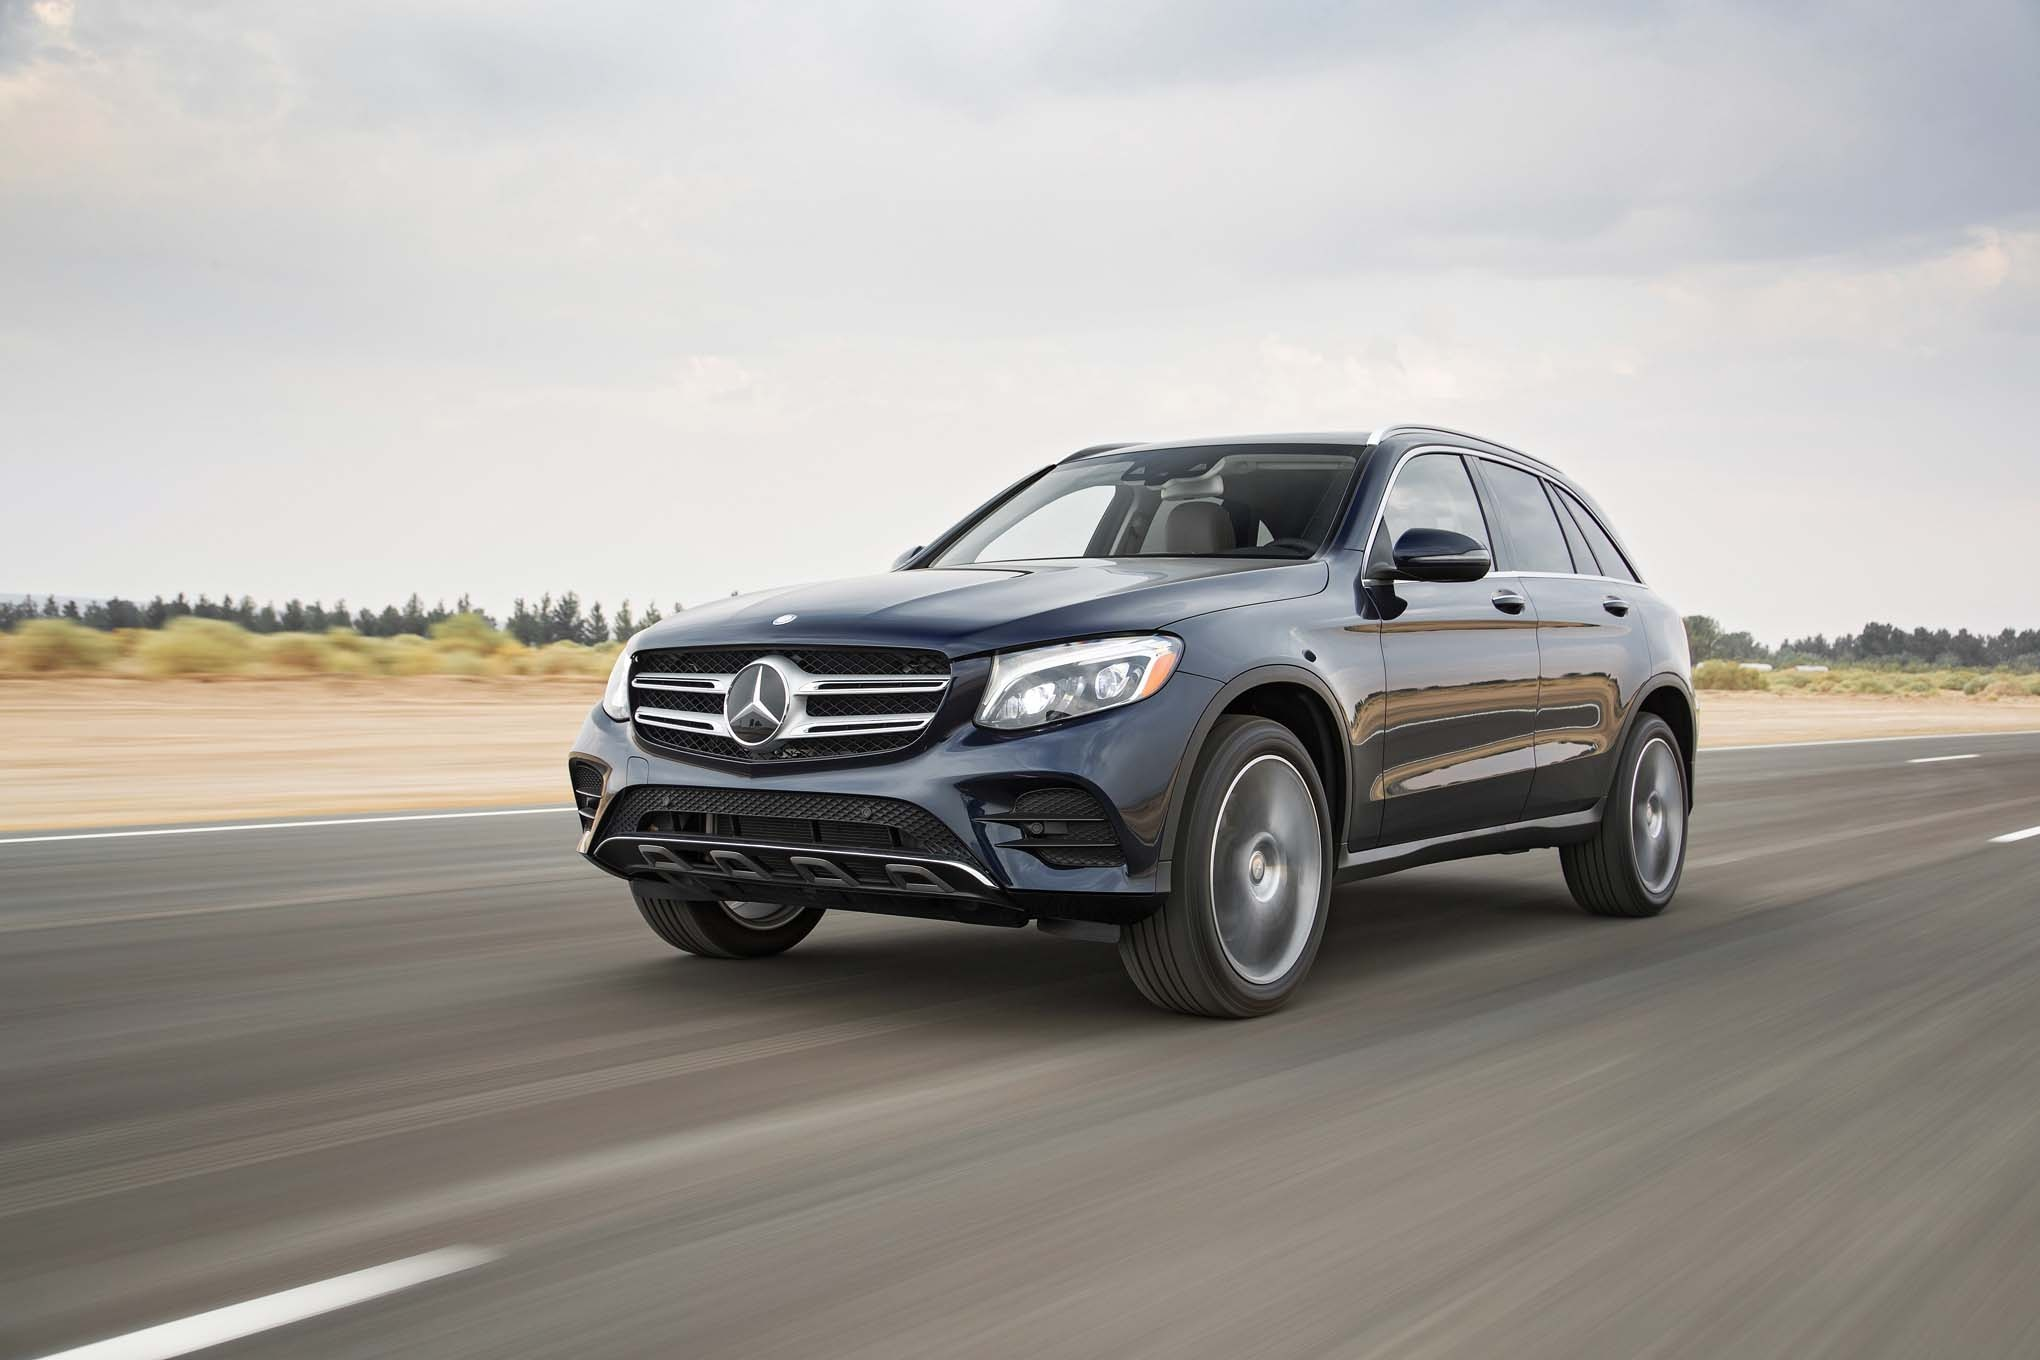 2016 Mercedes Benz GLC 300 4Matic Front Three Quarters In Motion